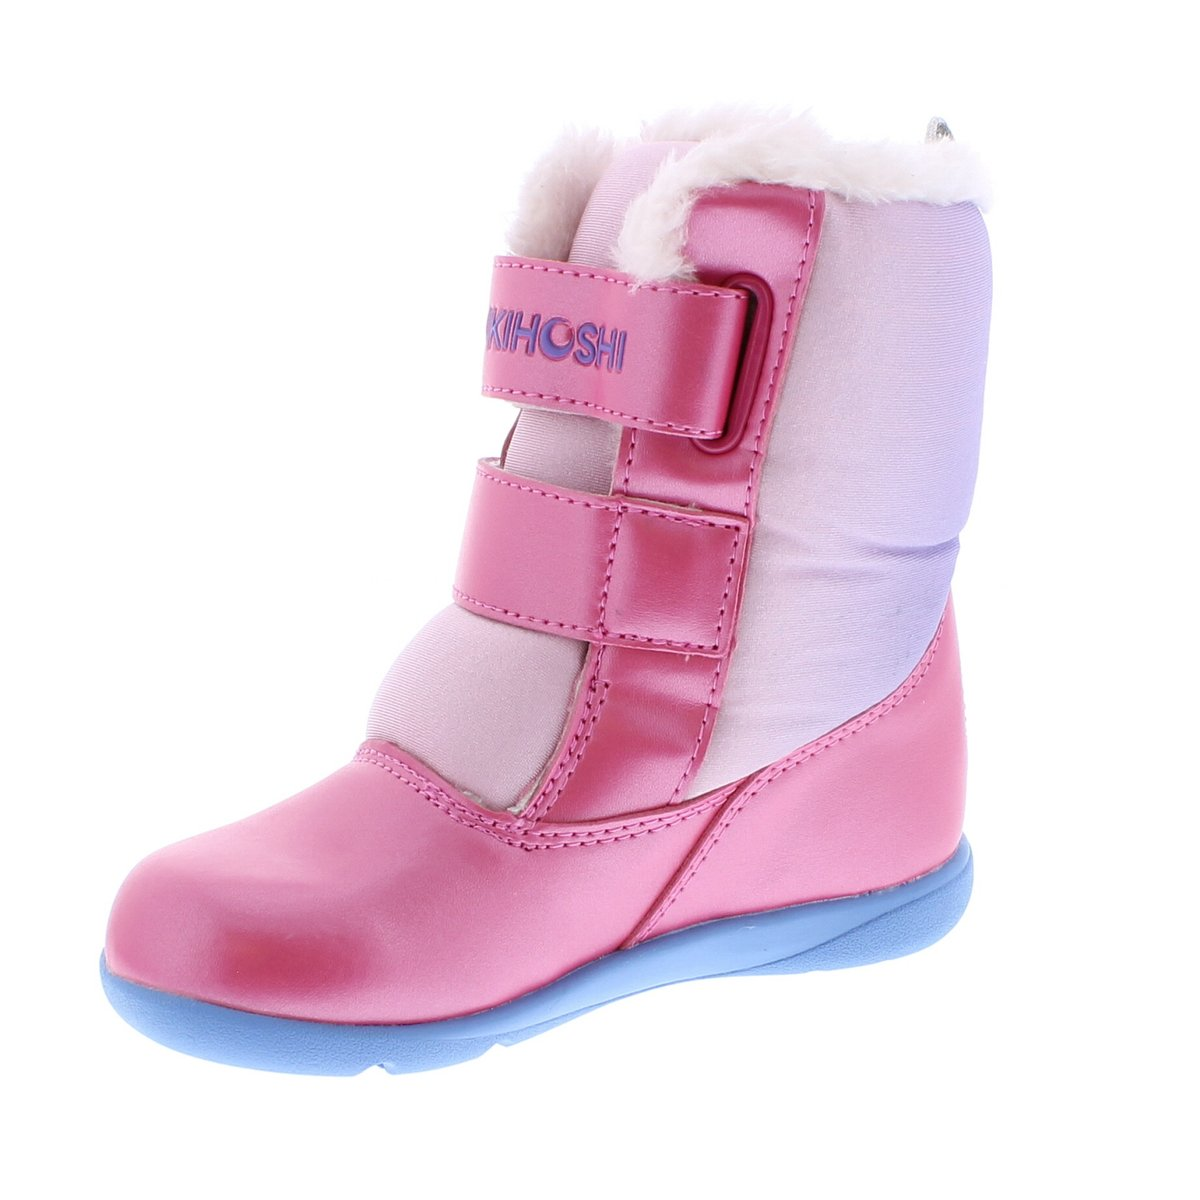 Child Tsukihoshi Teddy Boot in Fuchsia/Purple from the front view